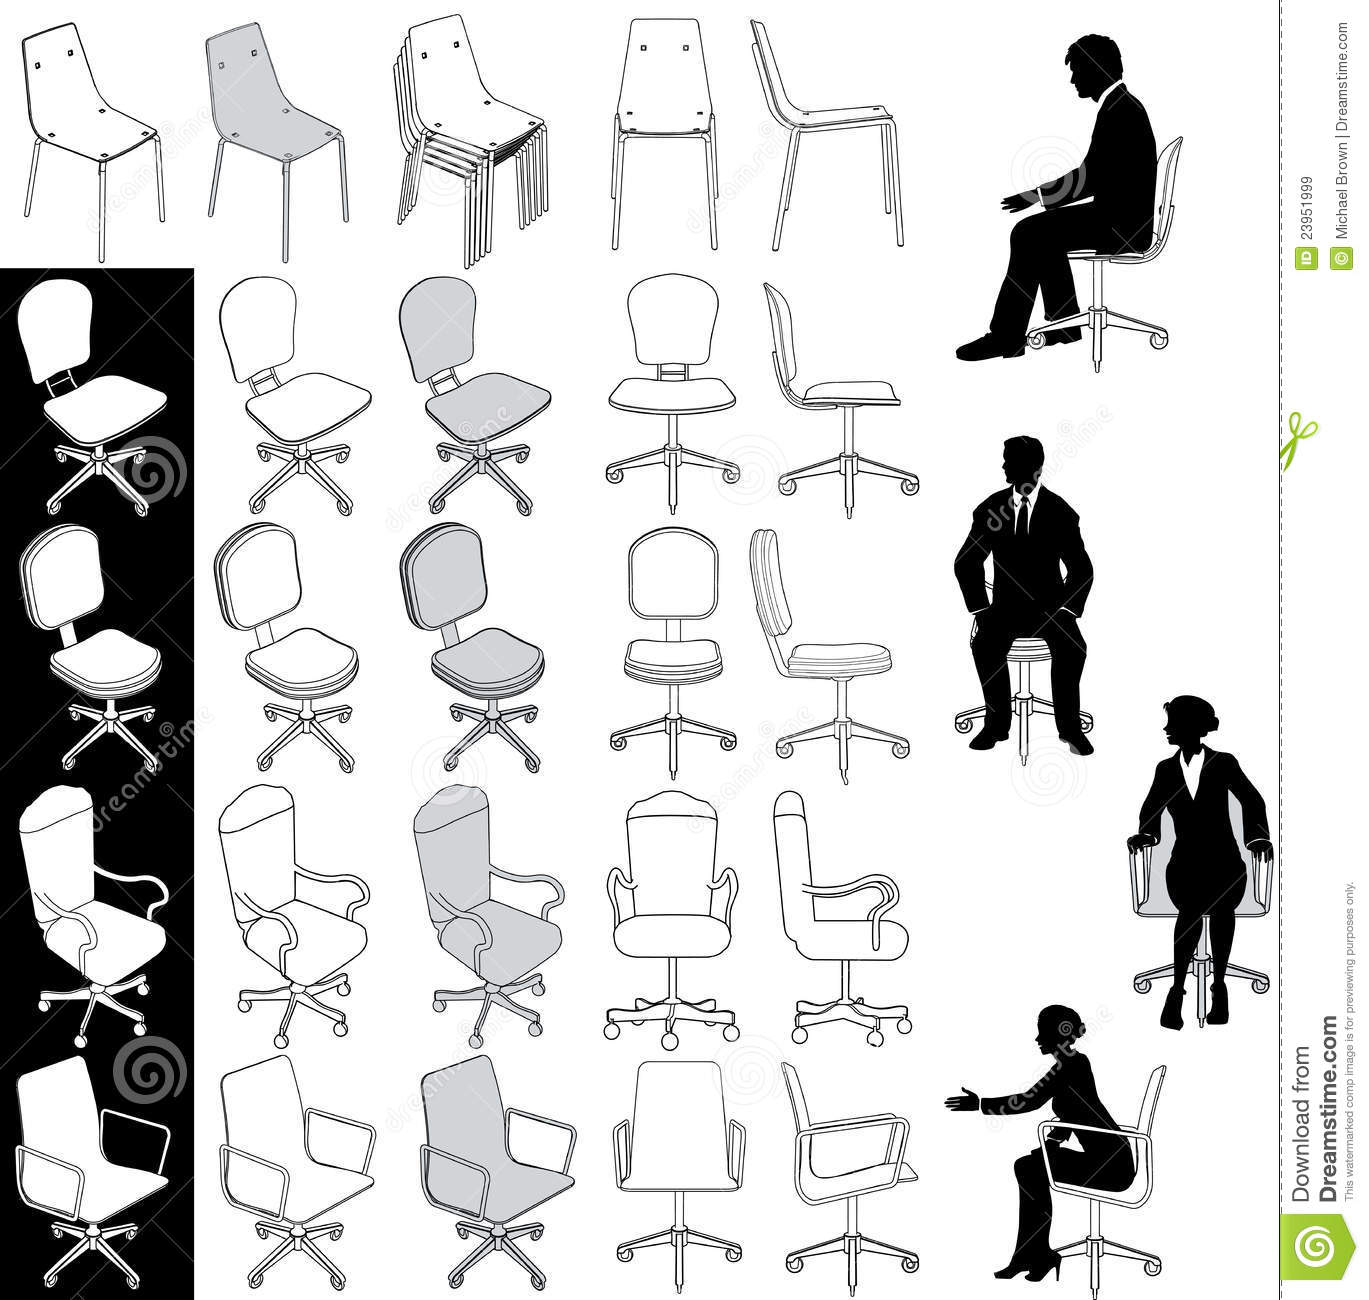 Office Business Chairs Furniture Drawings Set Royalty Free